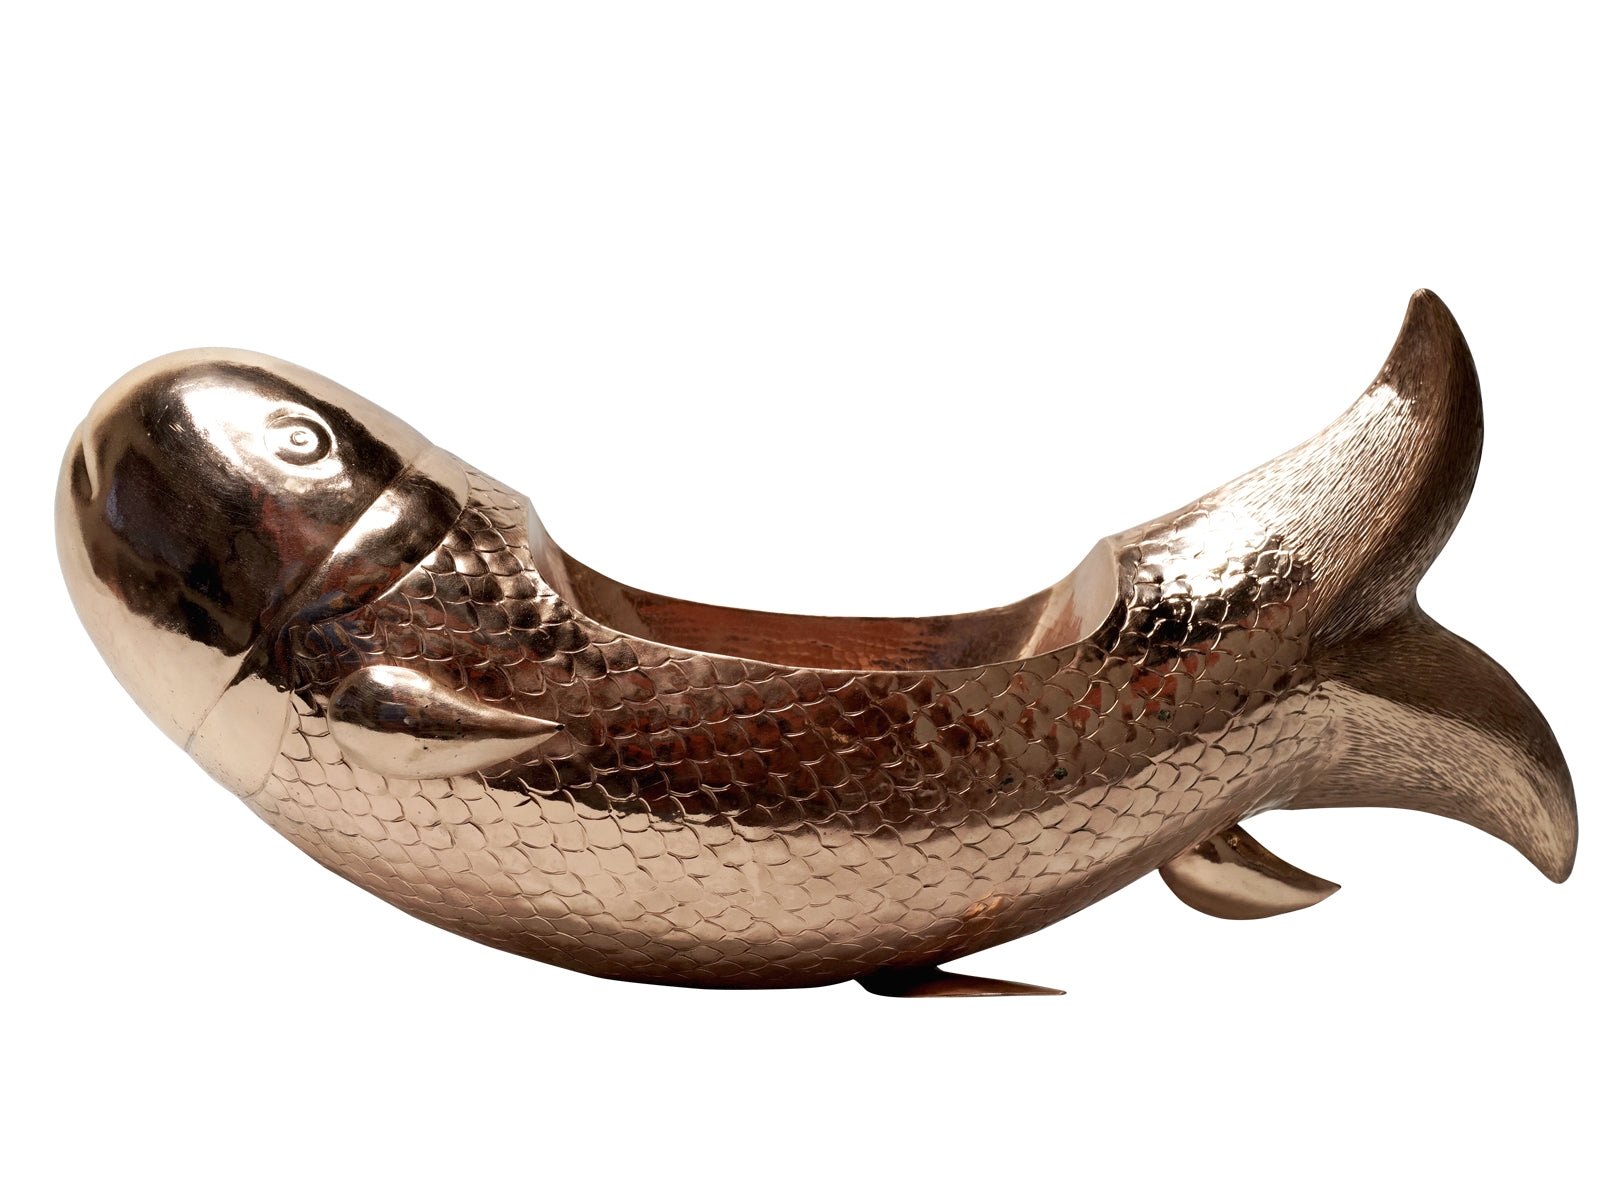 Copper Vessel Fish Koi